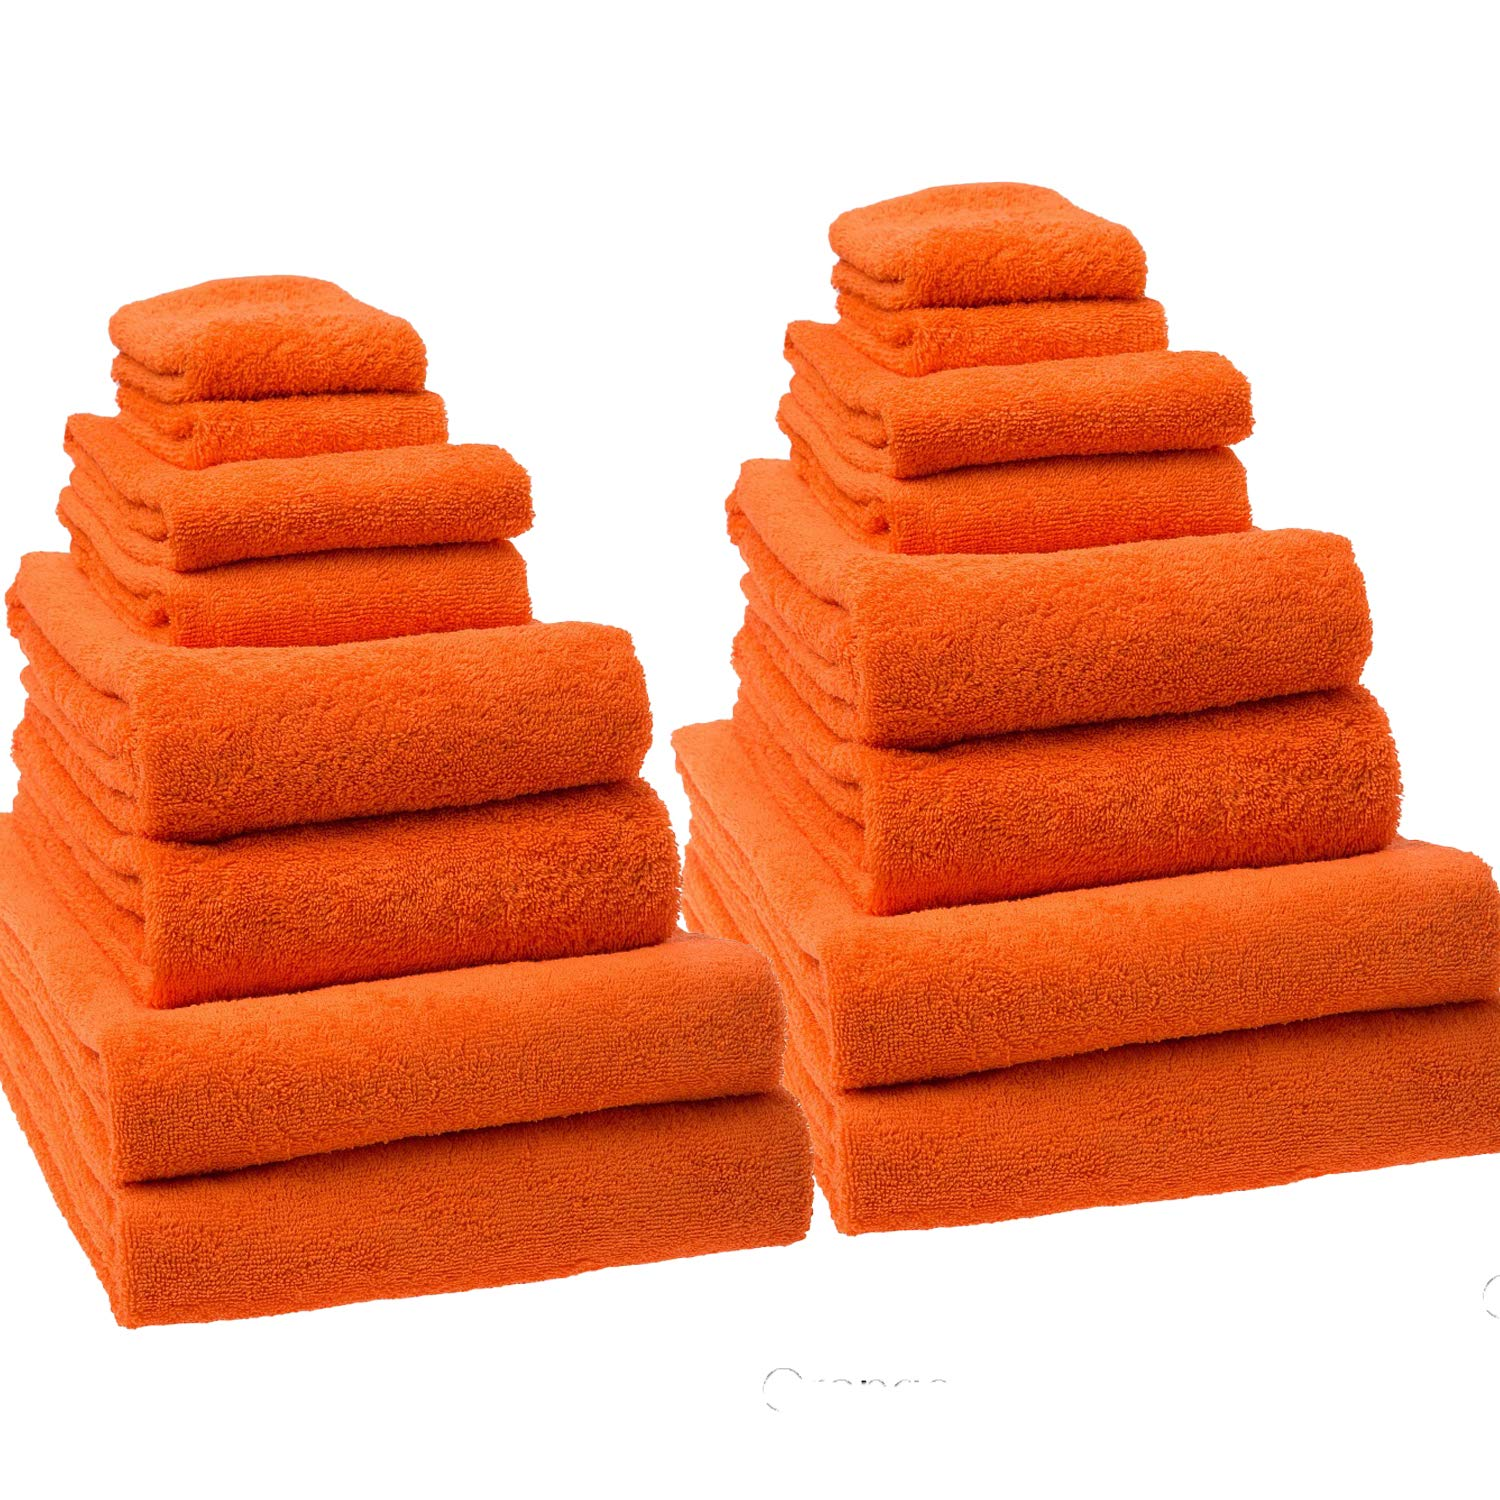 Classic Turkish Towels 16 Piece Bath Towel Set - Includes Oversized Bath Sheets, Bath Hand and Washcloth Towels Made with 100% Turkish Cotton (Orange)